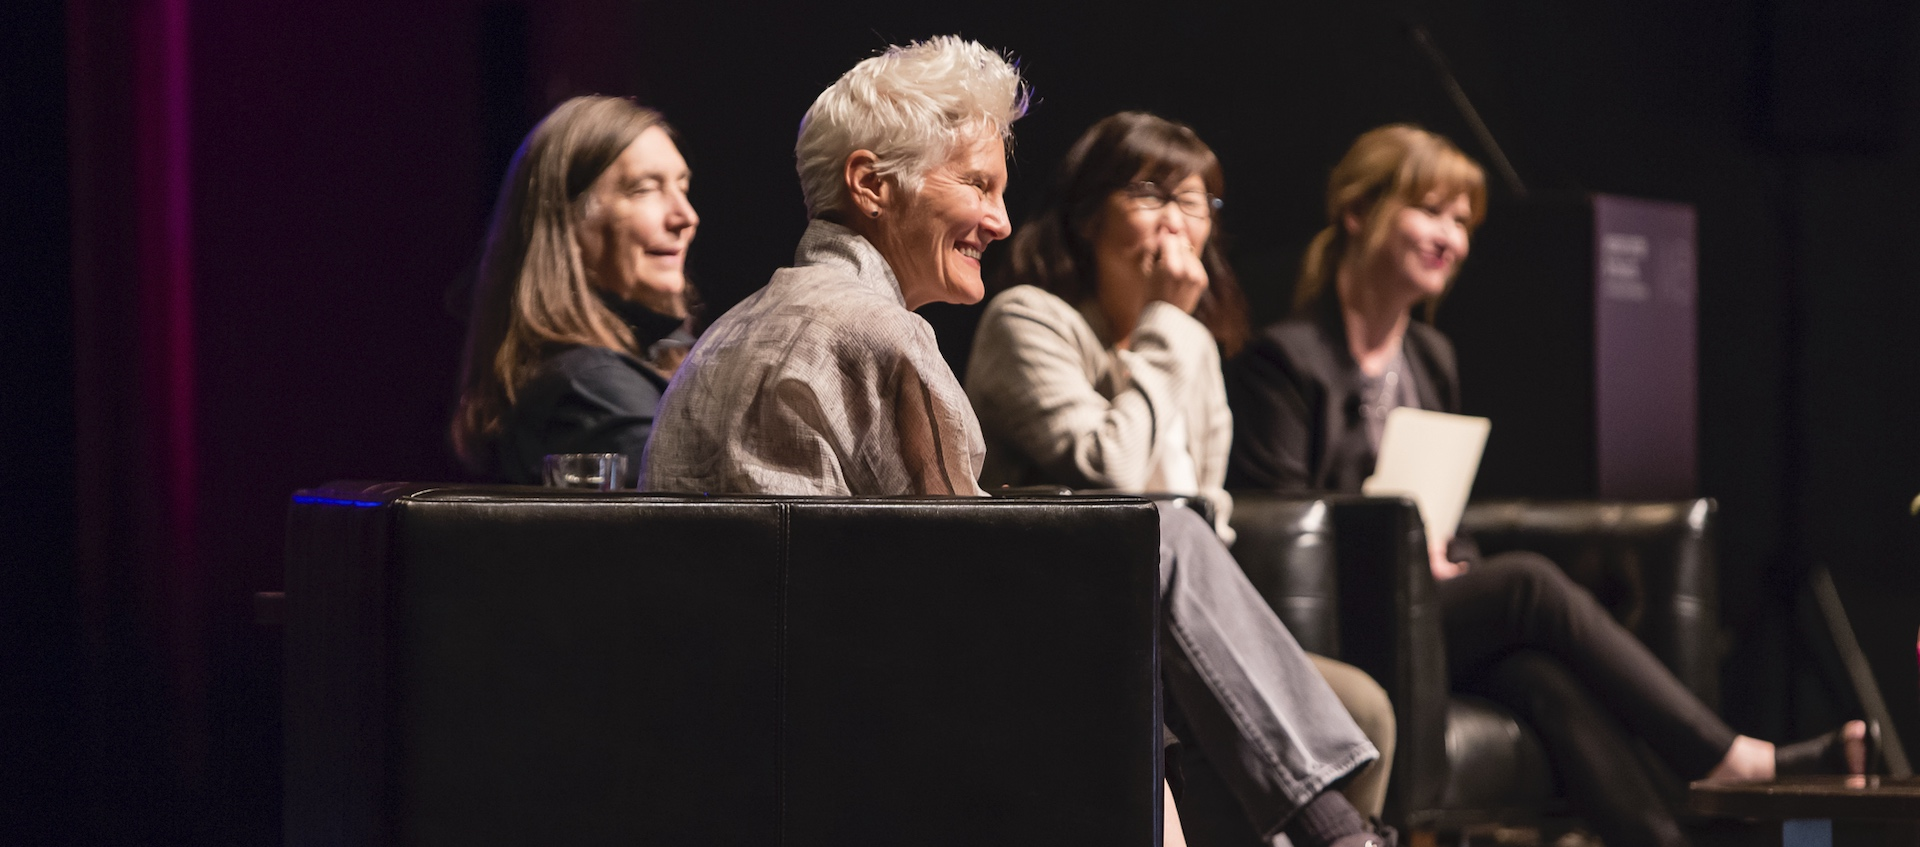 Artists Ann Hamilton, Jenny Holzer, and Maya Lin sitting on the stage of Mershon Auditorium, discussing their work with Wexner Center director Johann Burton as part of opening events for the fall 2019 exhibition HERE at the Wexner Center for the Arts. Photo by Katie Gentry